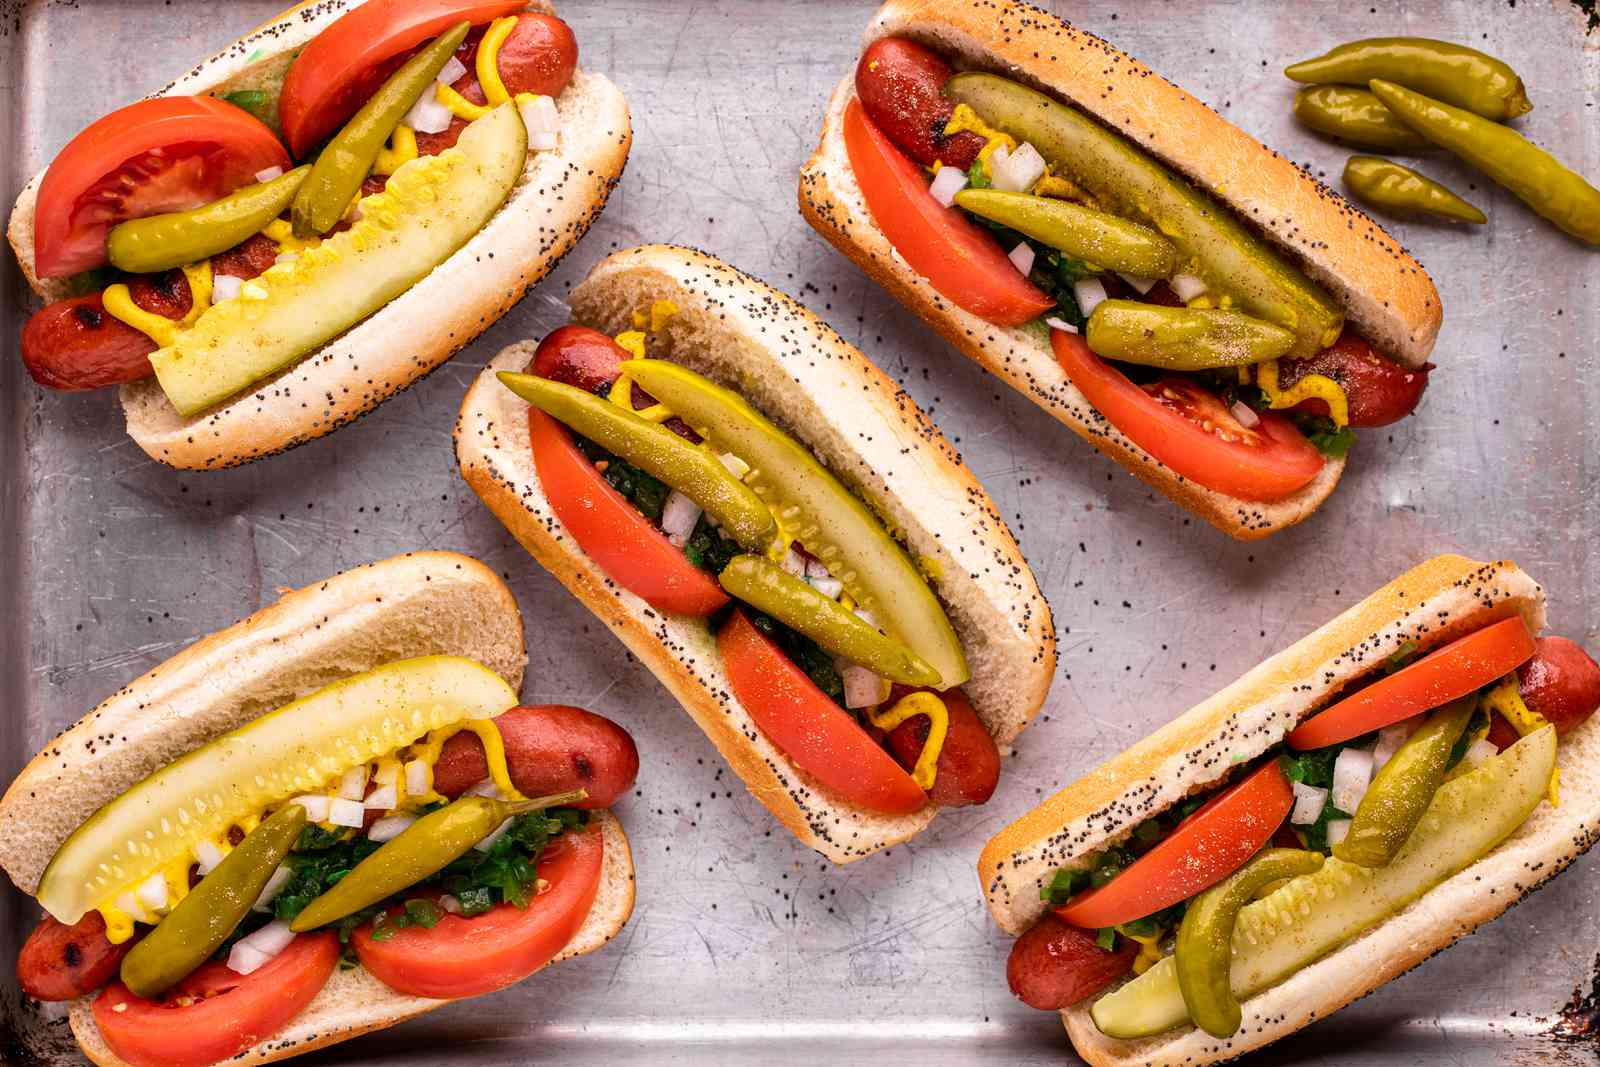 Overhead view of a sheet pan with Chicago-style hot dogs on it.